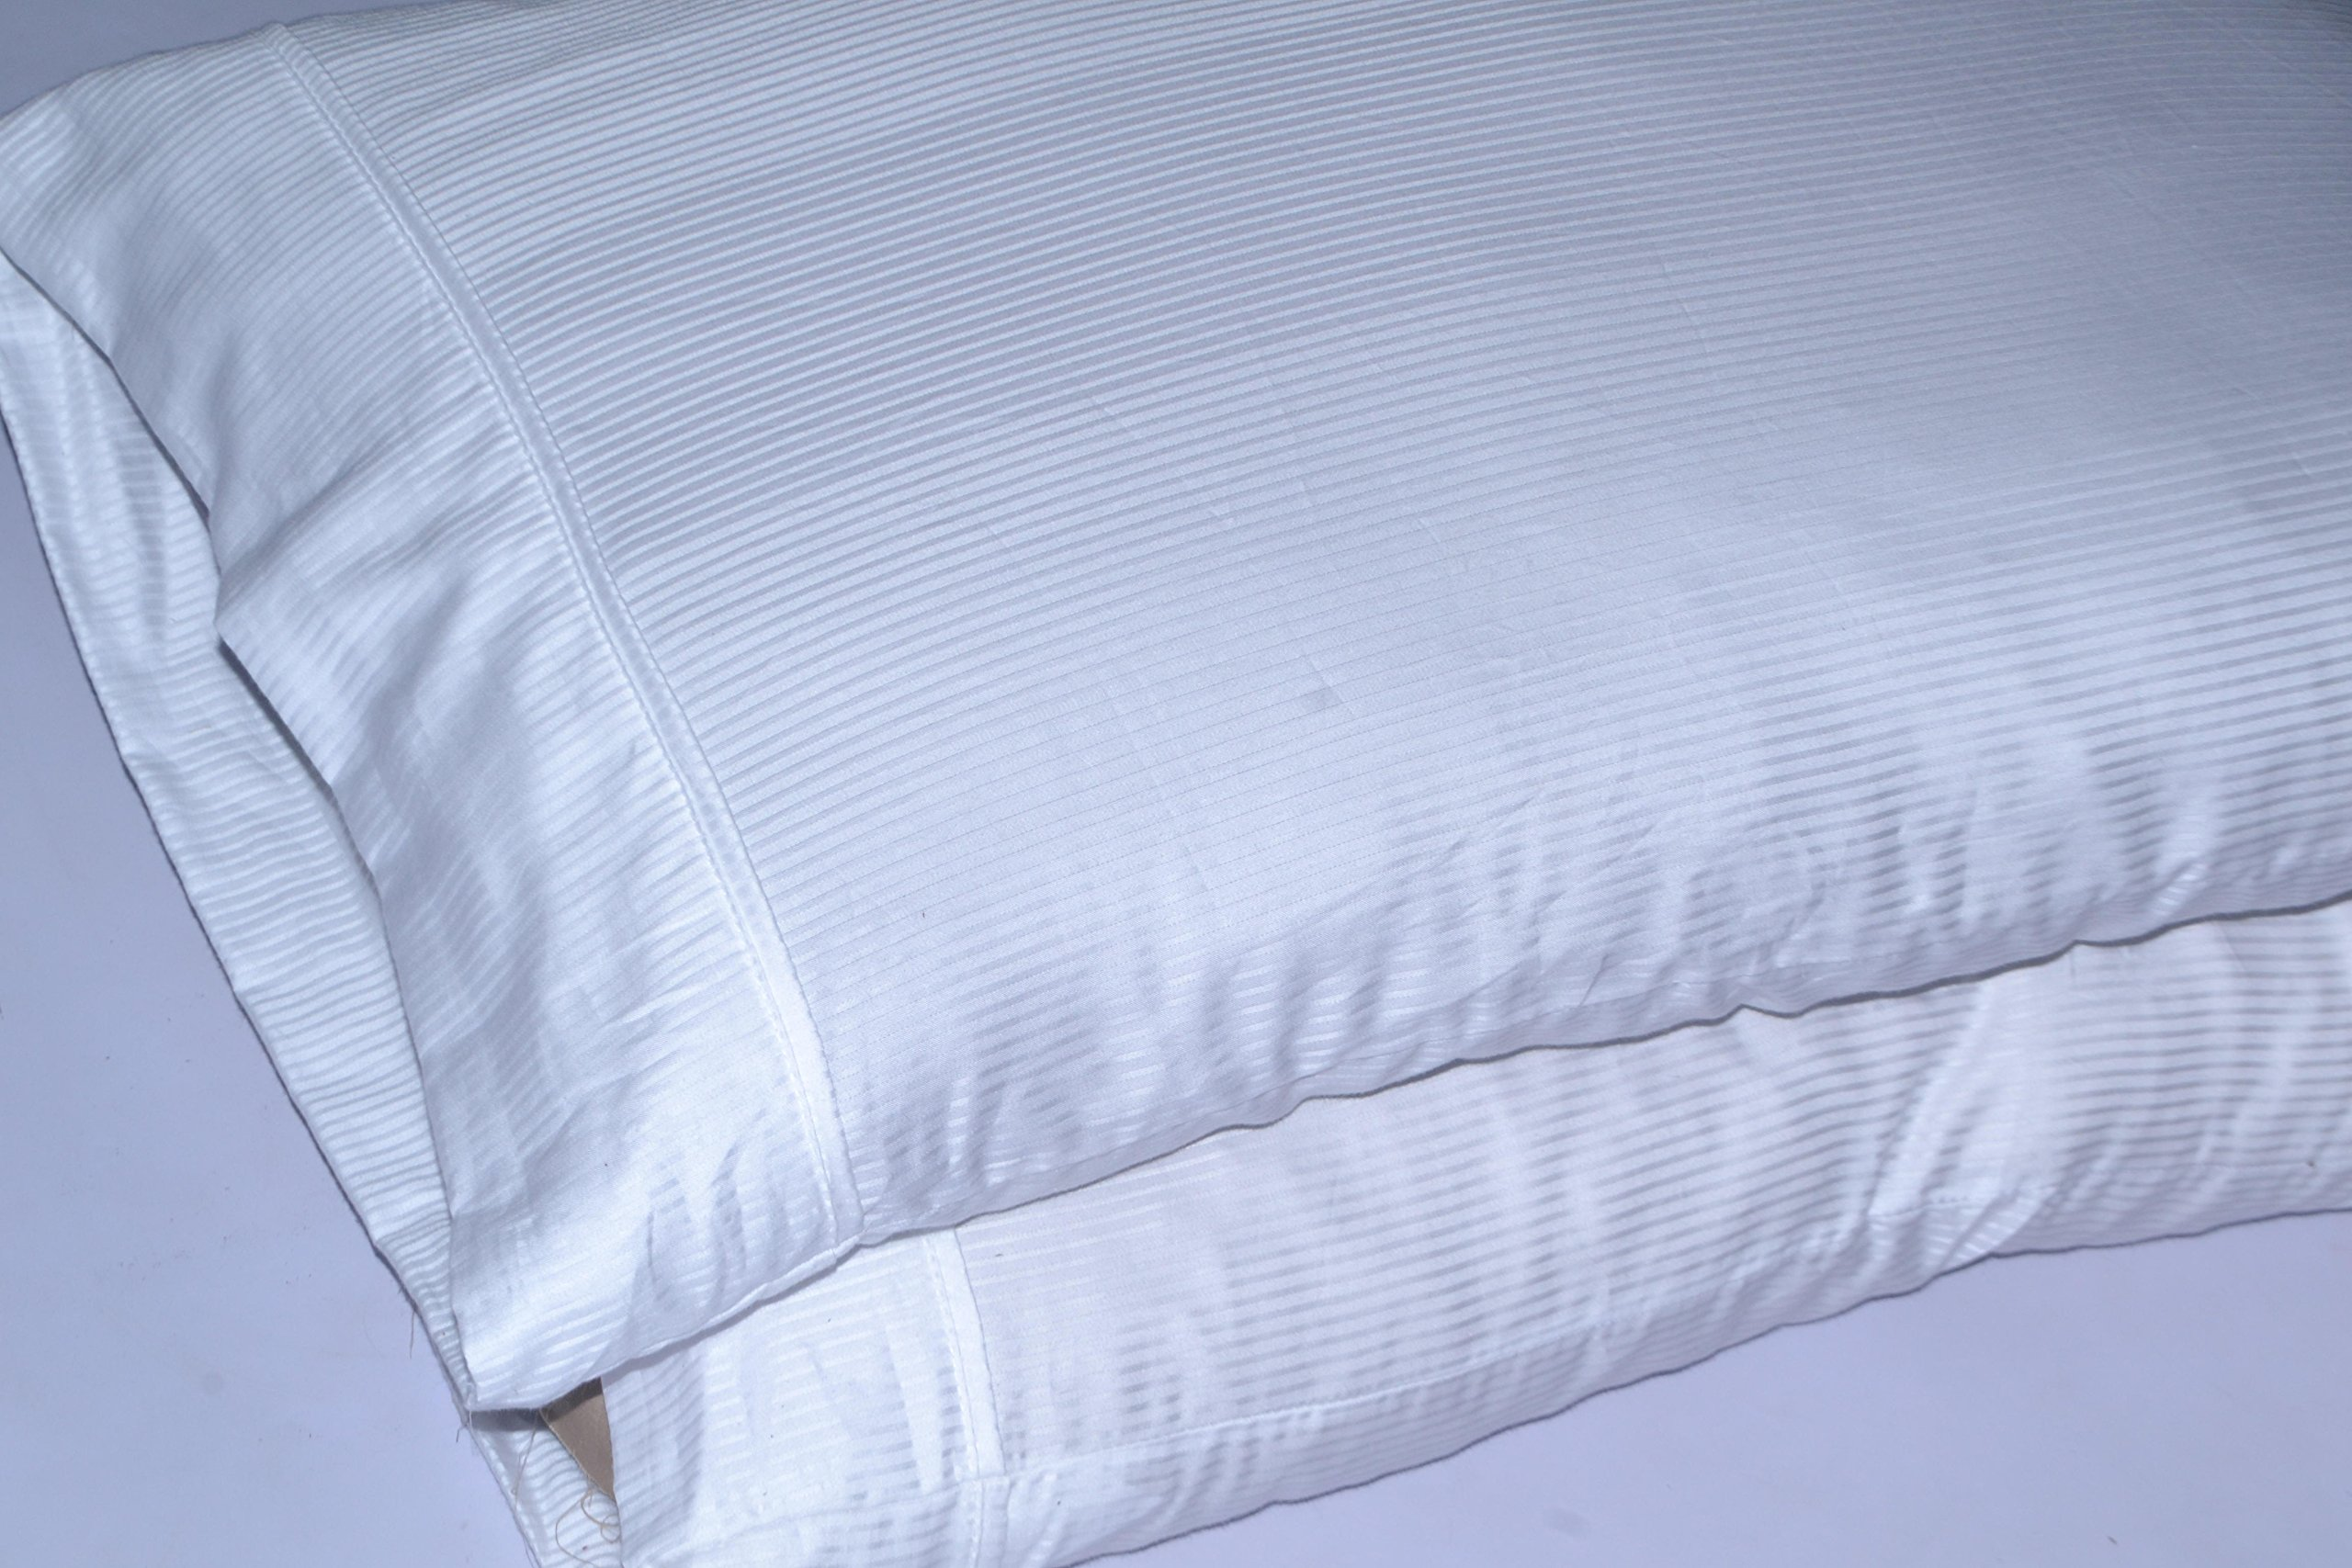 King Size Sheets Luxury Soft Bamboo Sheets - Sheet Set for King Mattress White Pin Stripe 1000 Thread Count